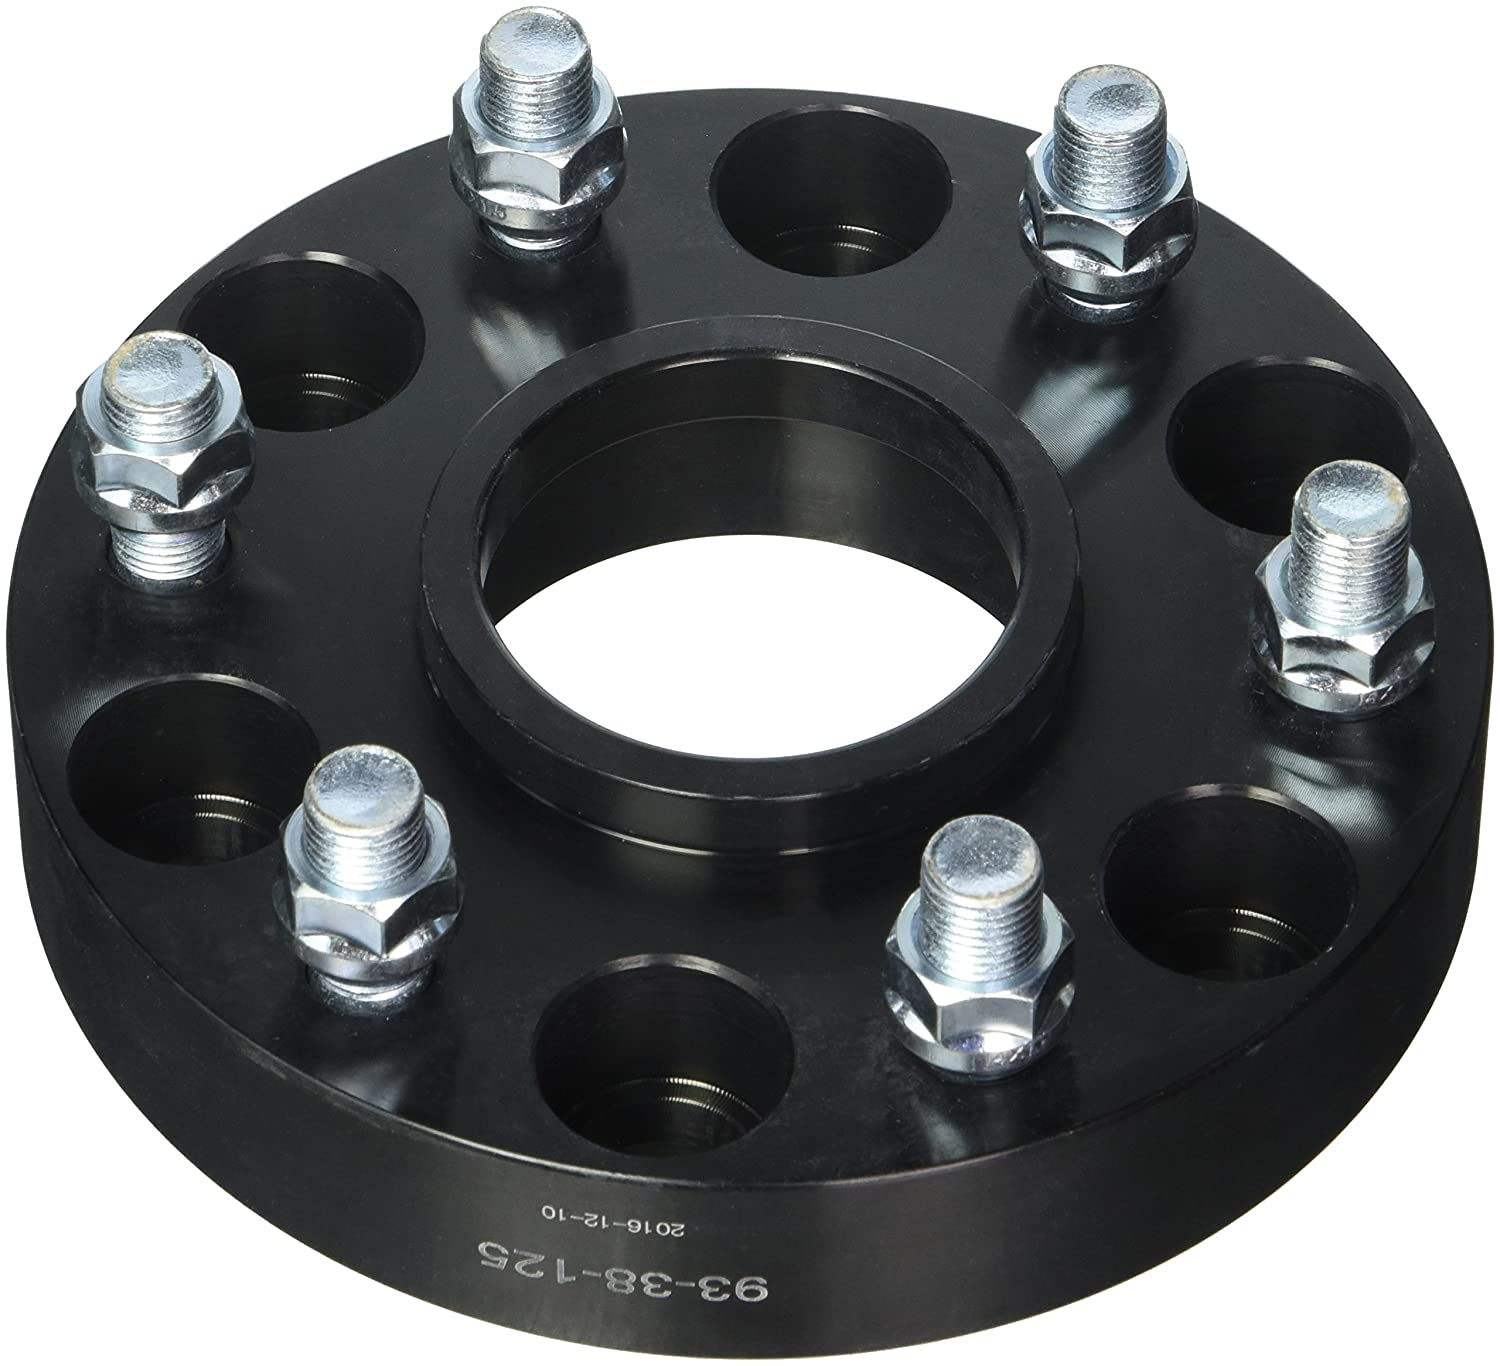 G2 Axle/&Gear 9338125 Wheel Spacer